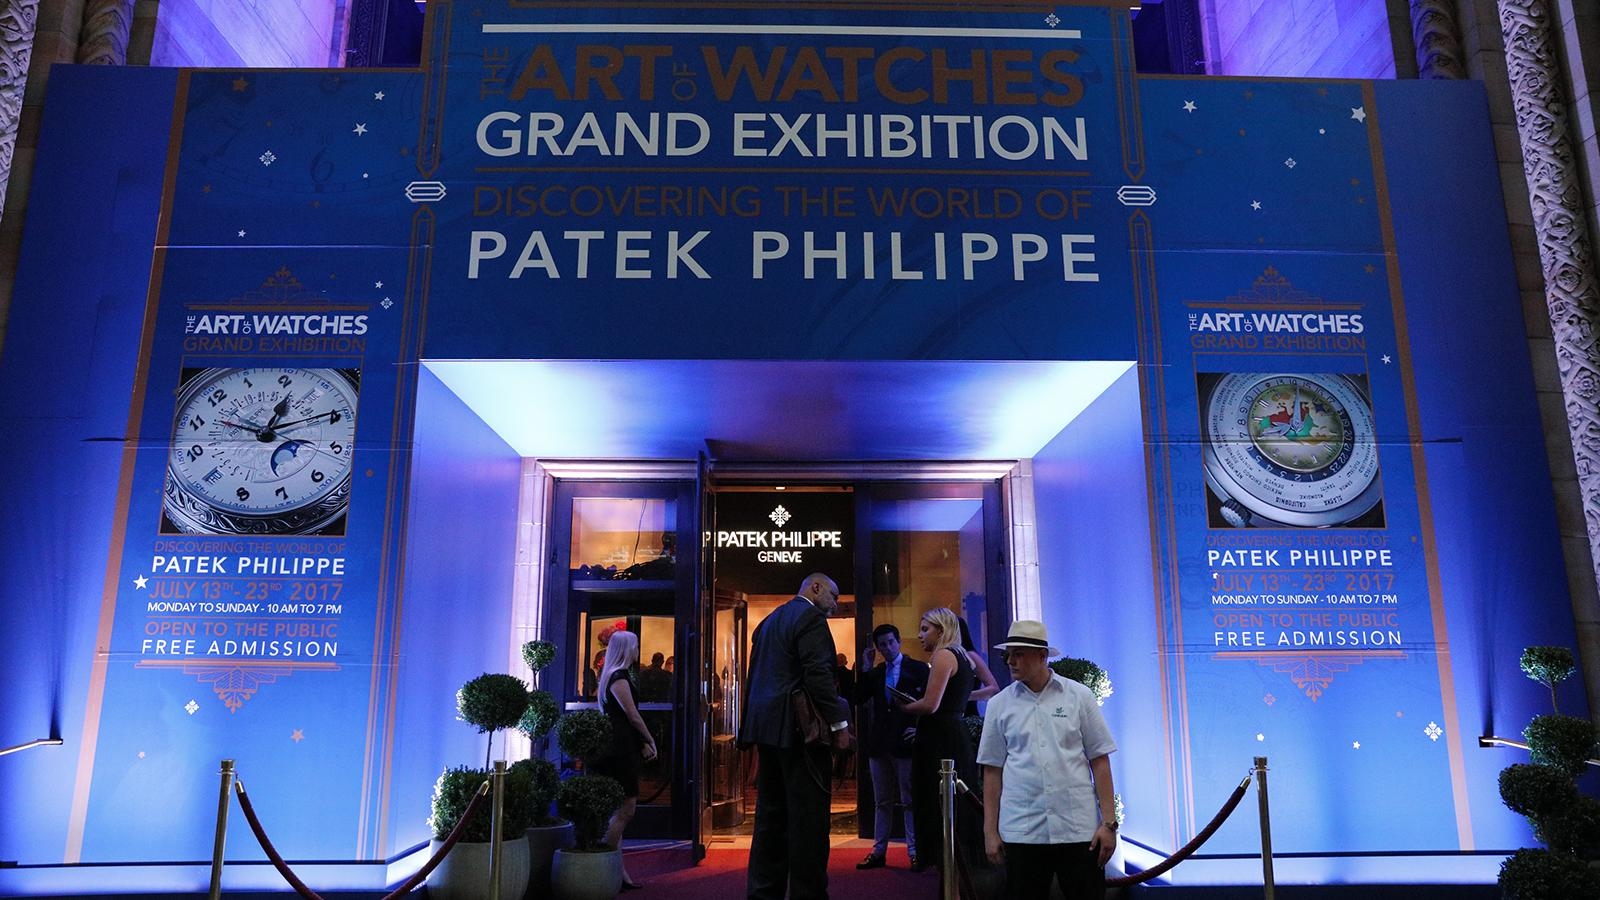 Patek Philippe's The Art of Watches Grand Exhibition New York 2017 is being held at Cipriani 42nd Street in New York City.